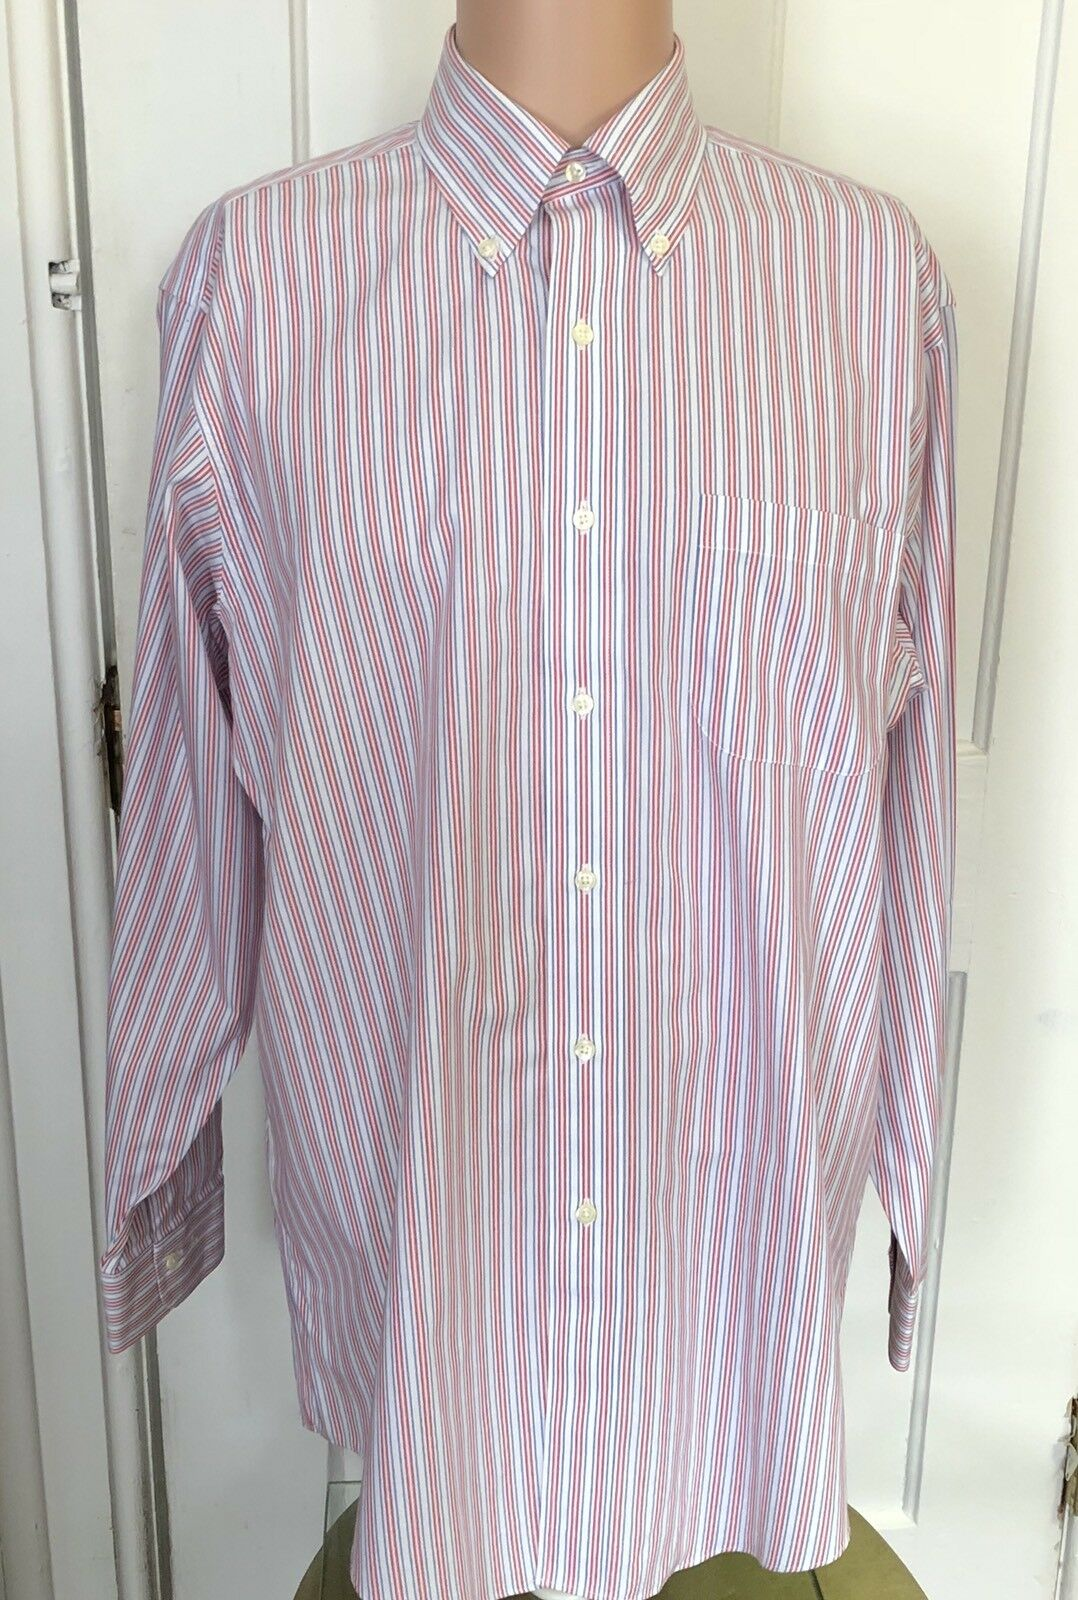 Brooks Bredhers Shirt Mens Size 15.5 33 Long Sleeve Red bluee Stripe 15 1 2